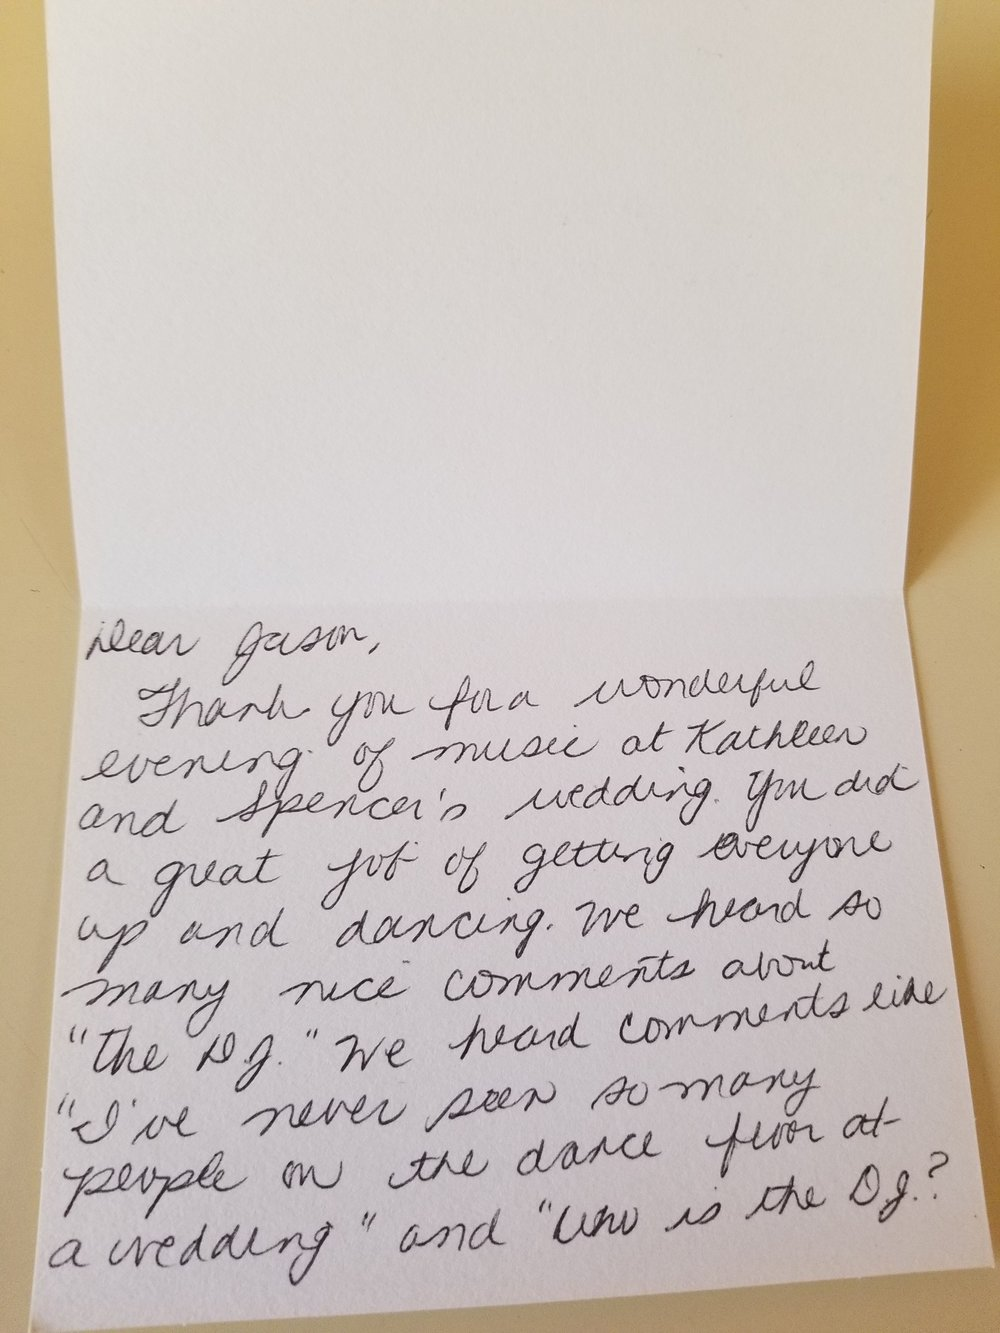 Bills, bills, junk mail, bills… parental approval thank you notes?  Priceless.